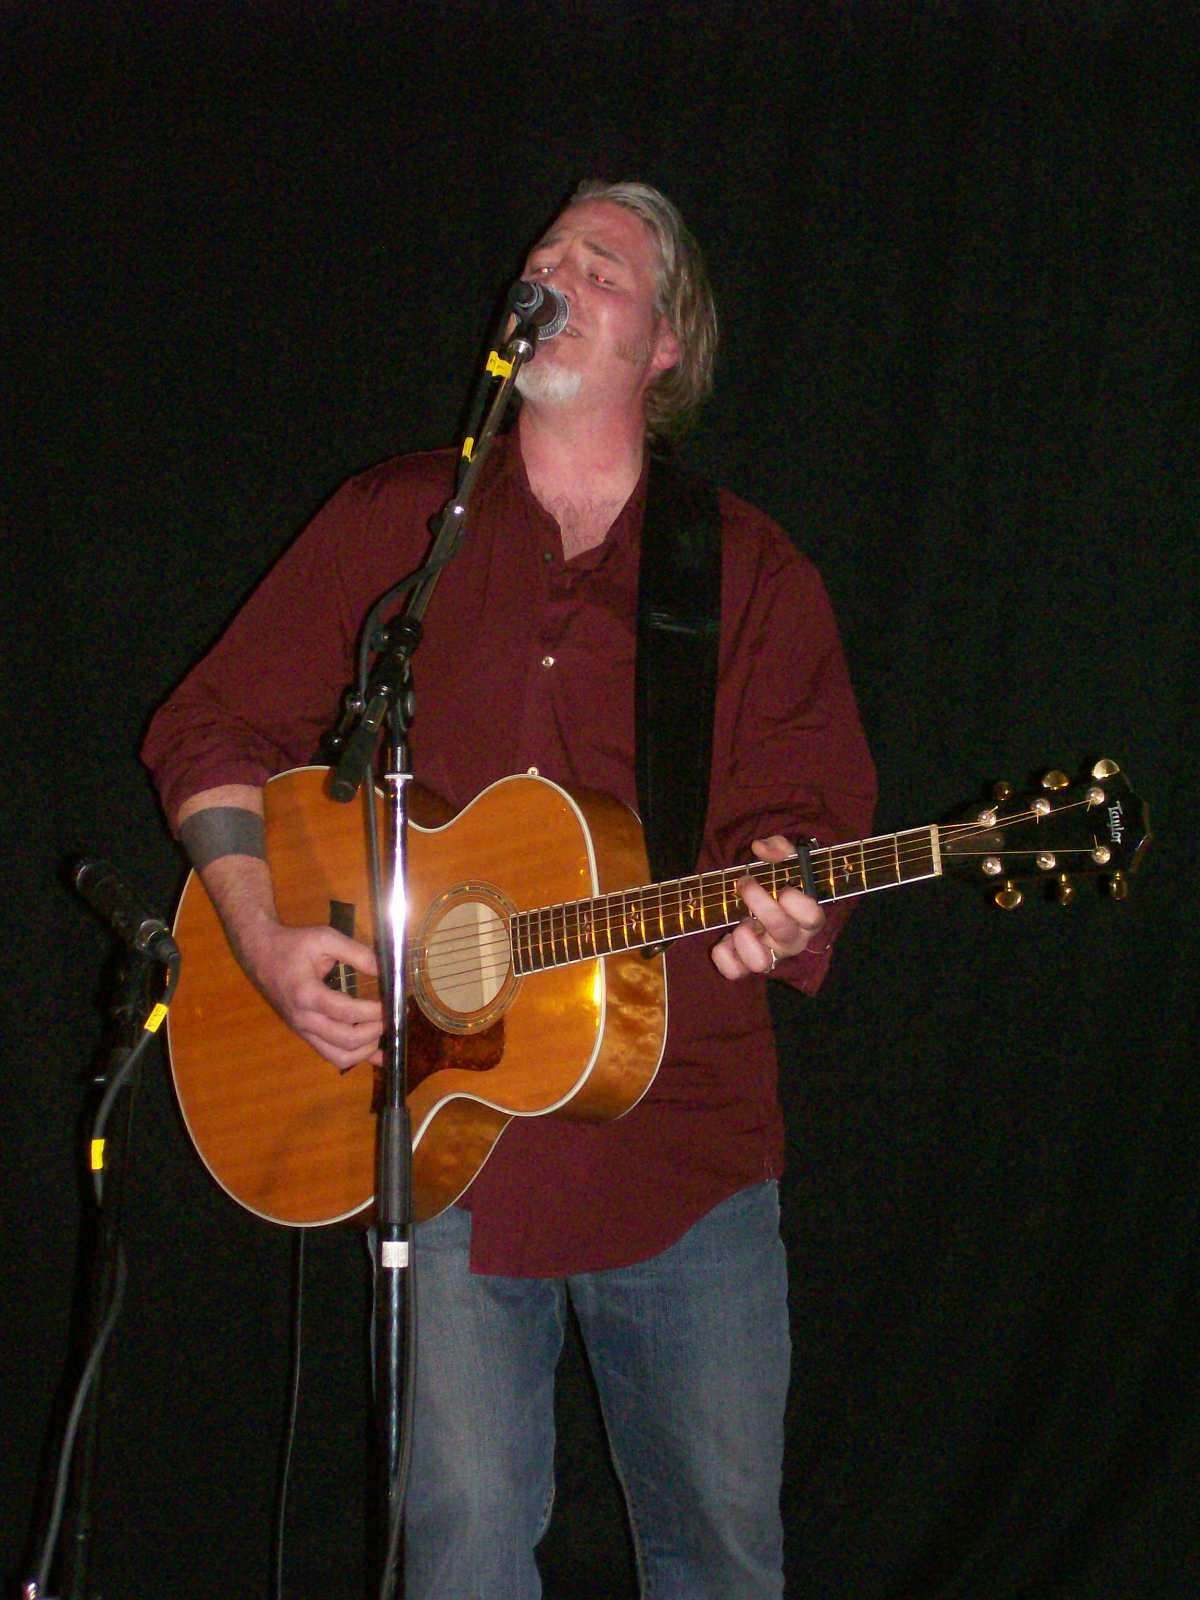 Jon Brooks at the Black Walnut Folk Club November 16, 2007